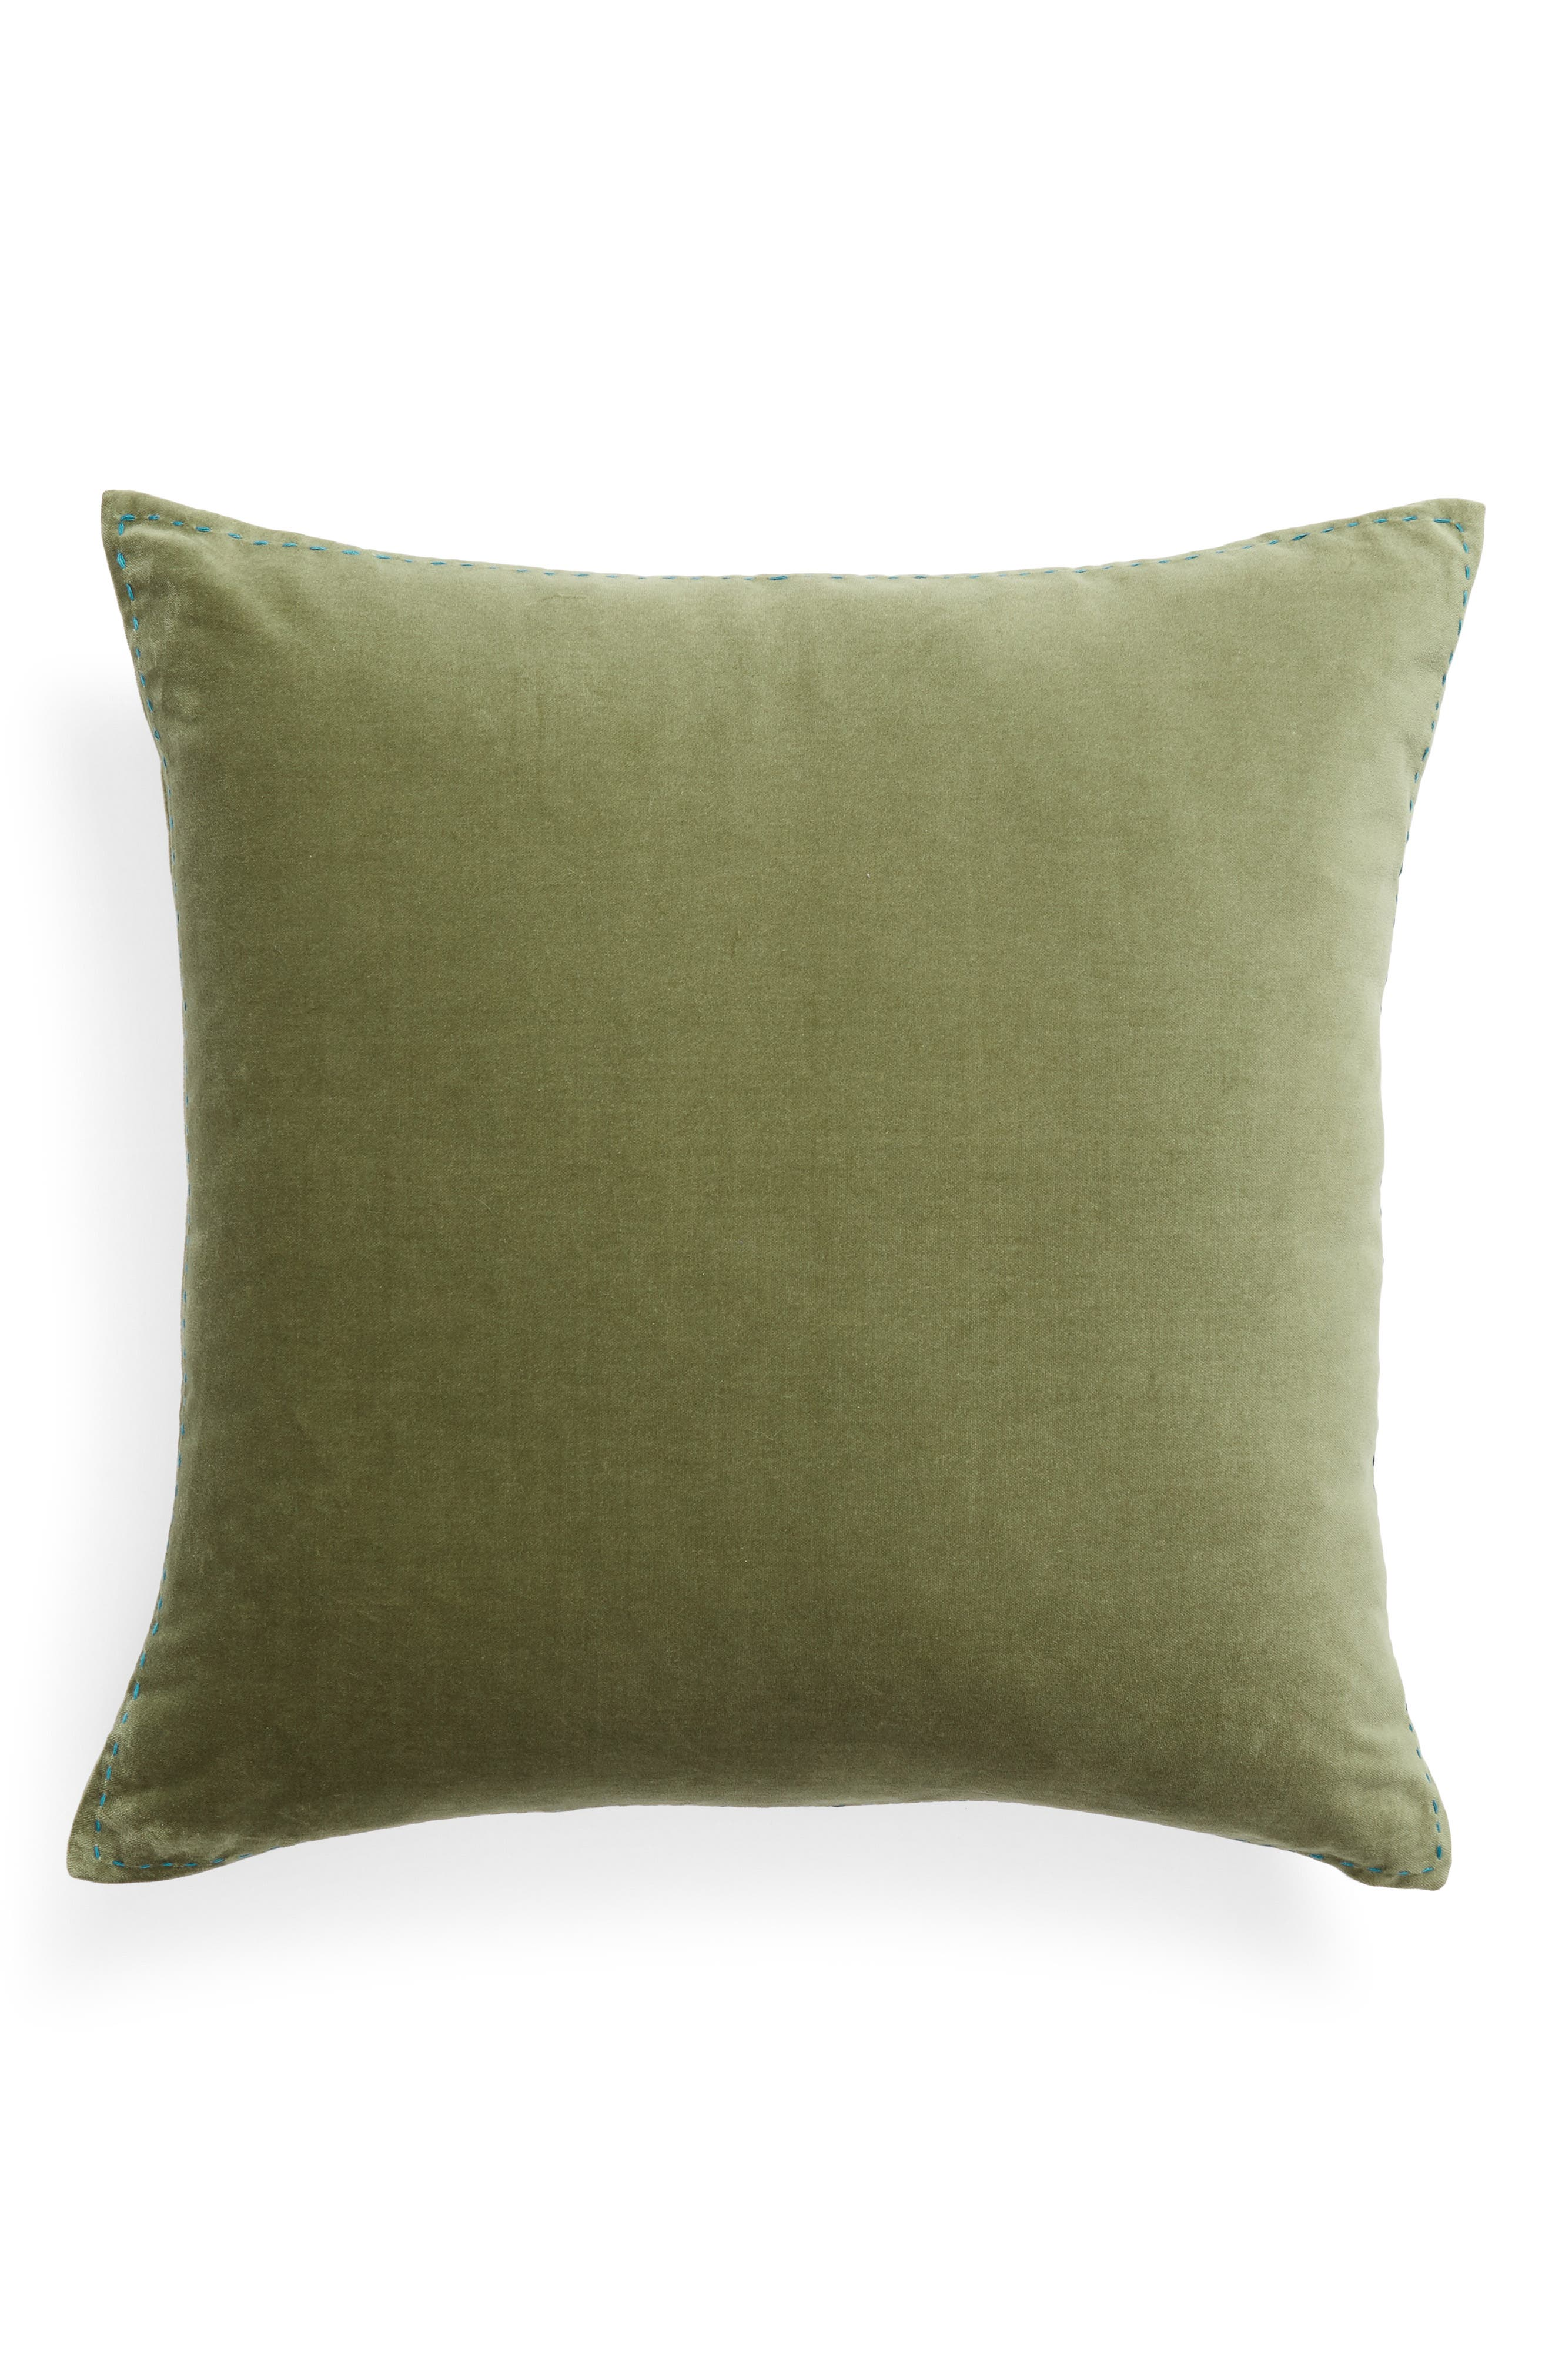 Ticking Border Accent Pillow,                             Alternate thumbnail 2, color,                             Green Sorrel